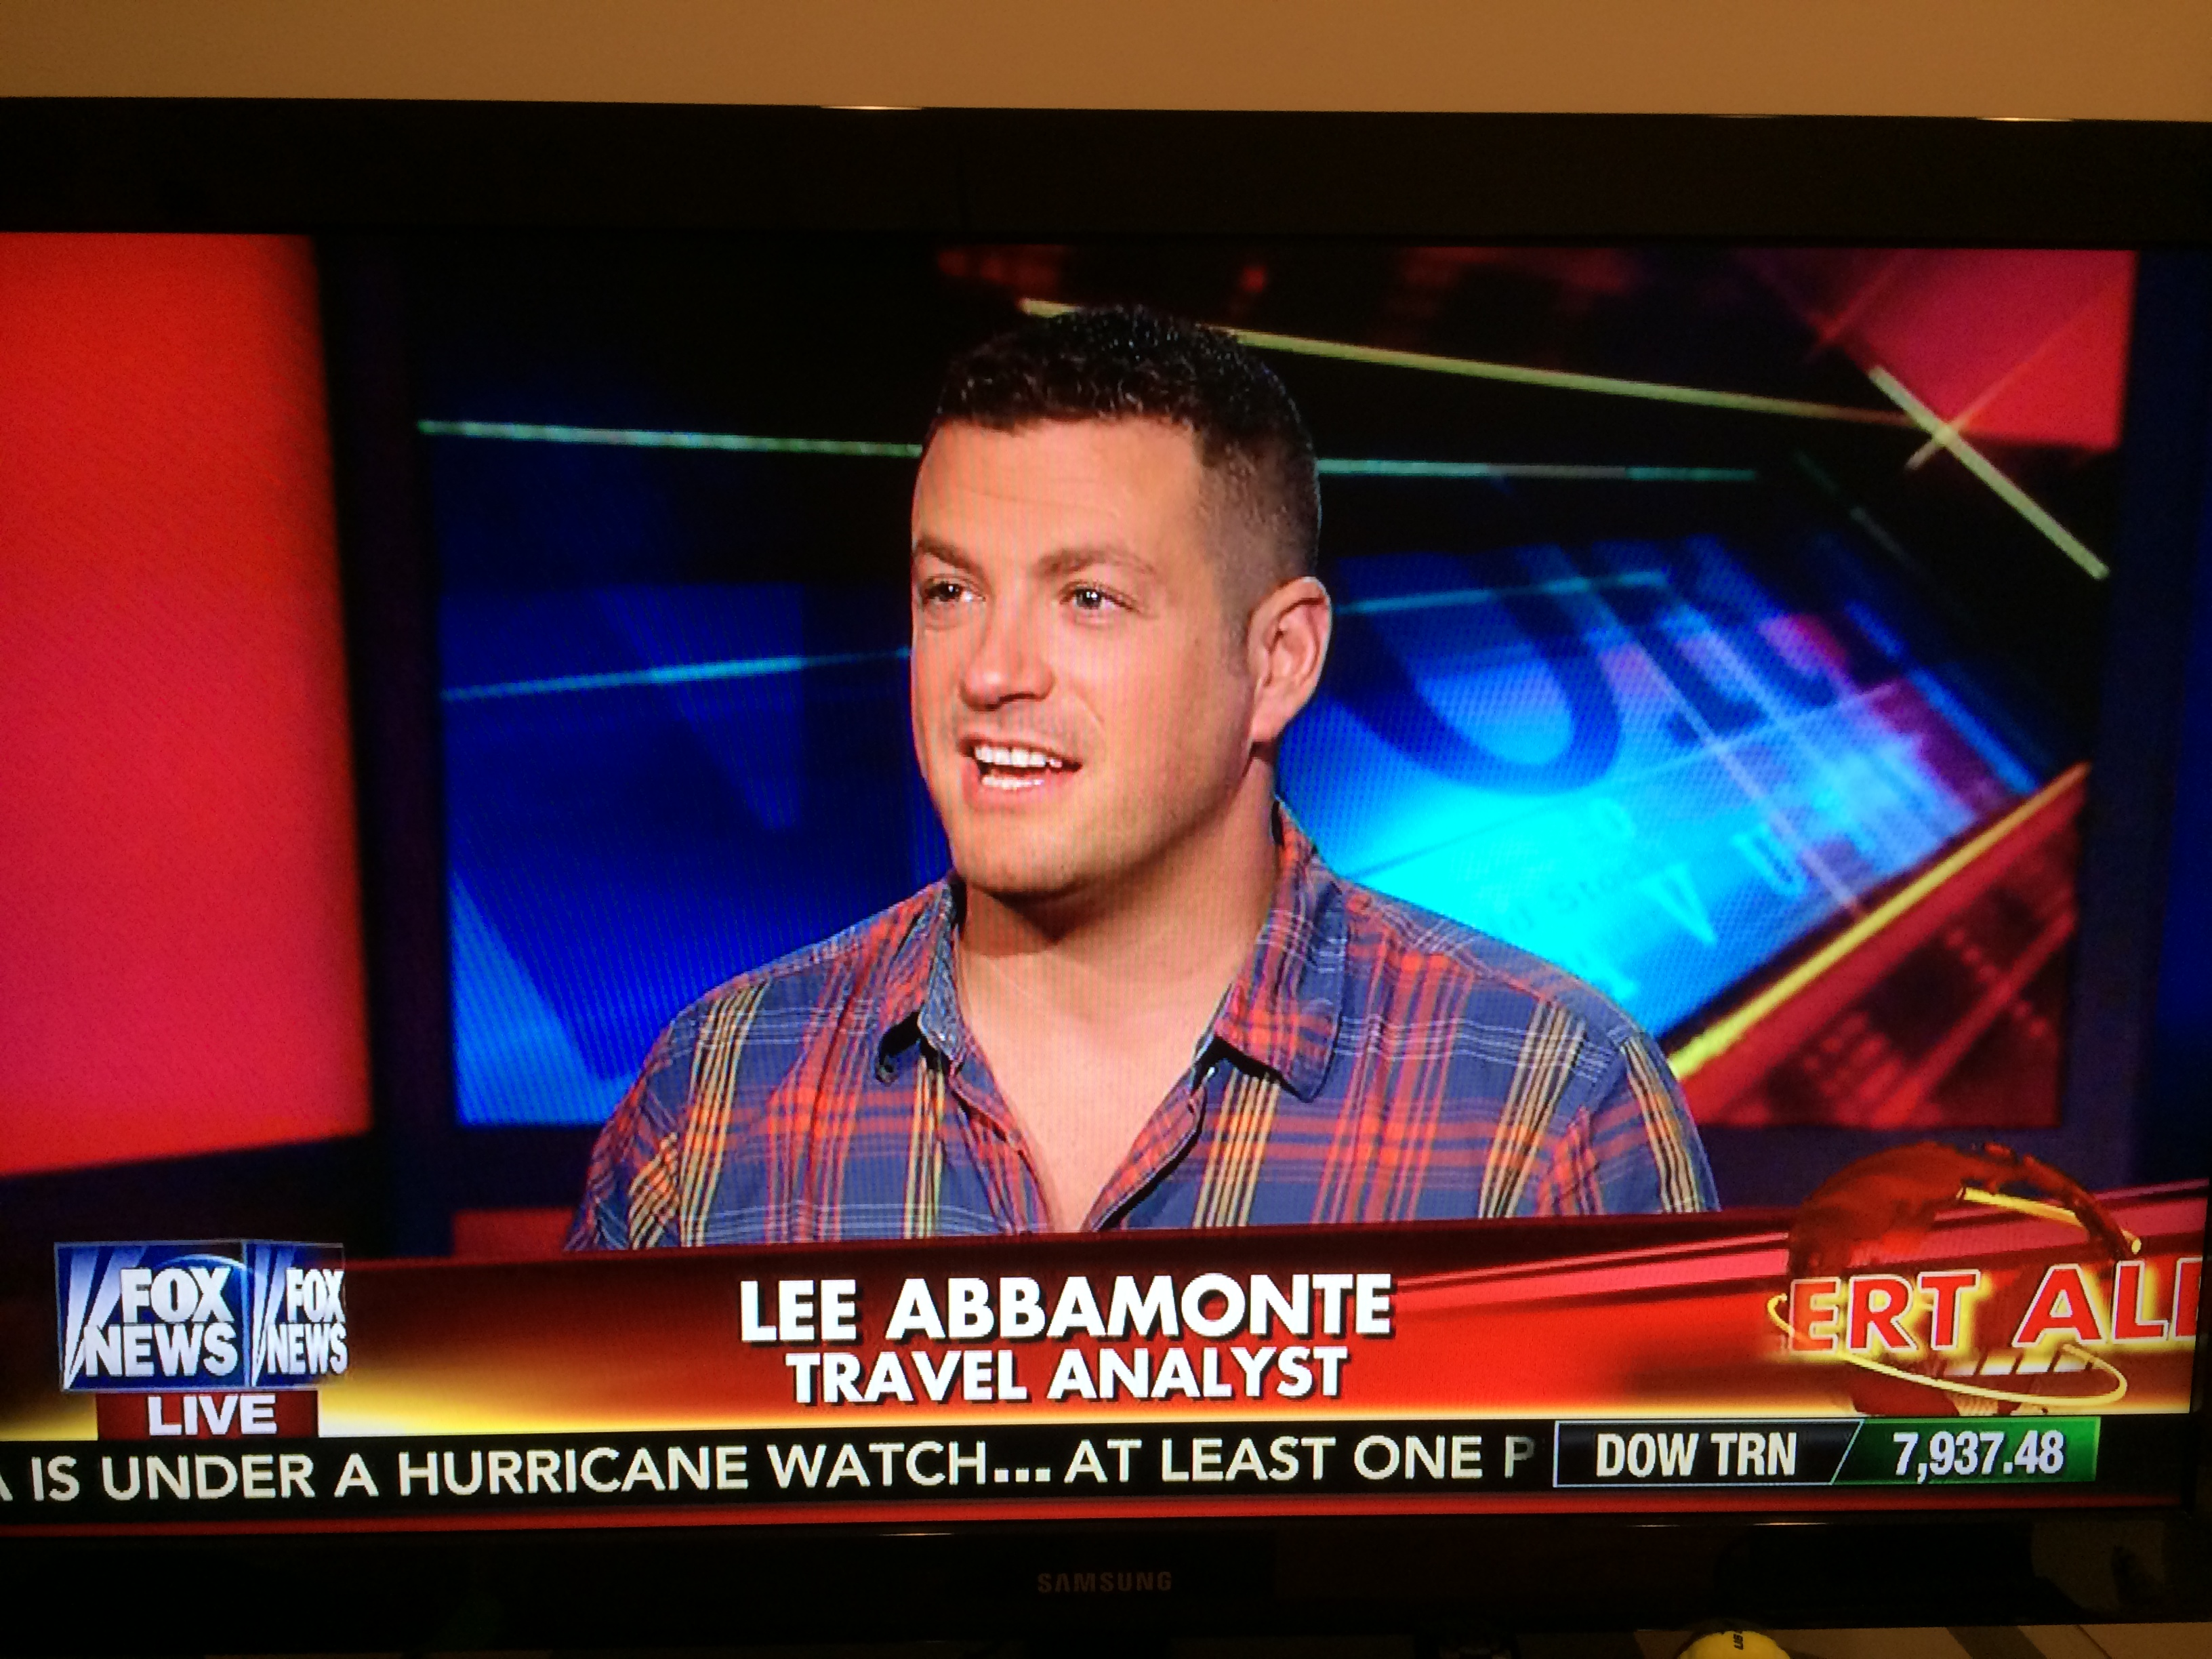 My Latest Cavuto Segment Talking Ebola and Travel